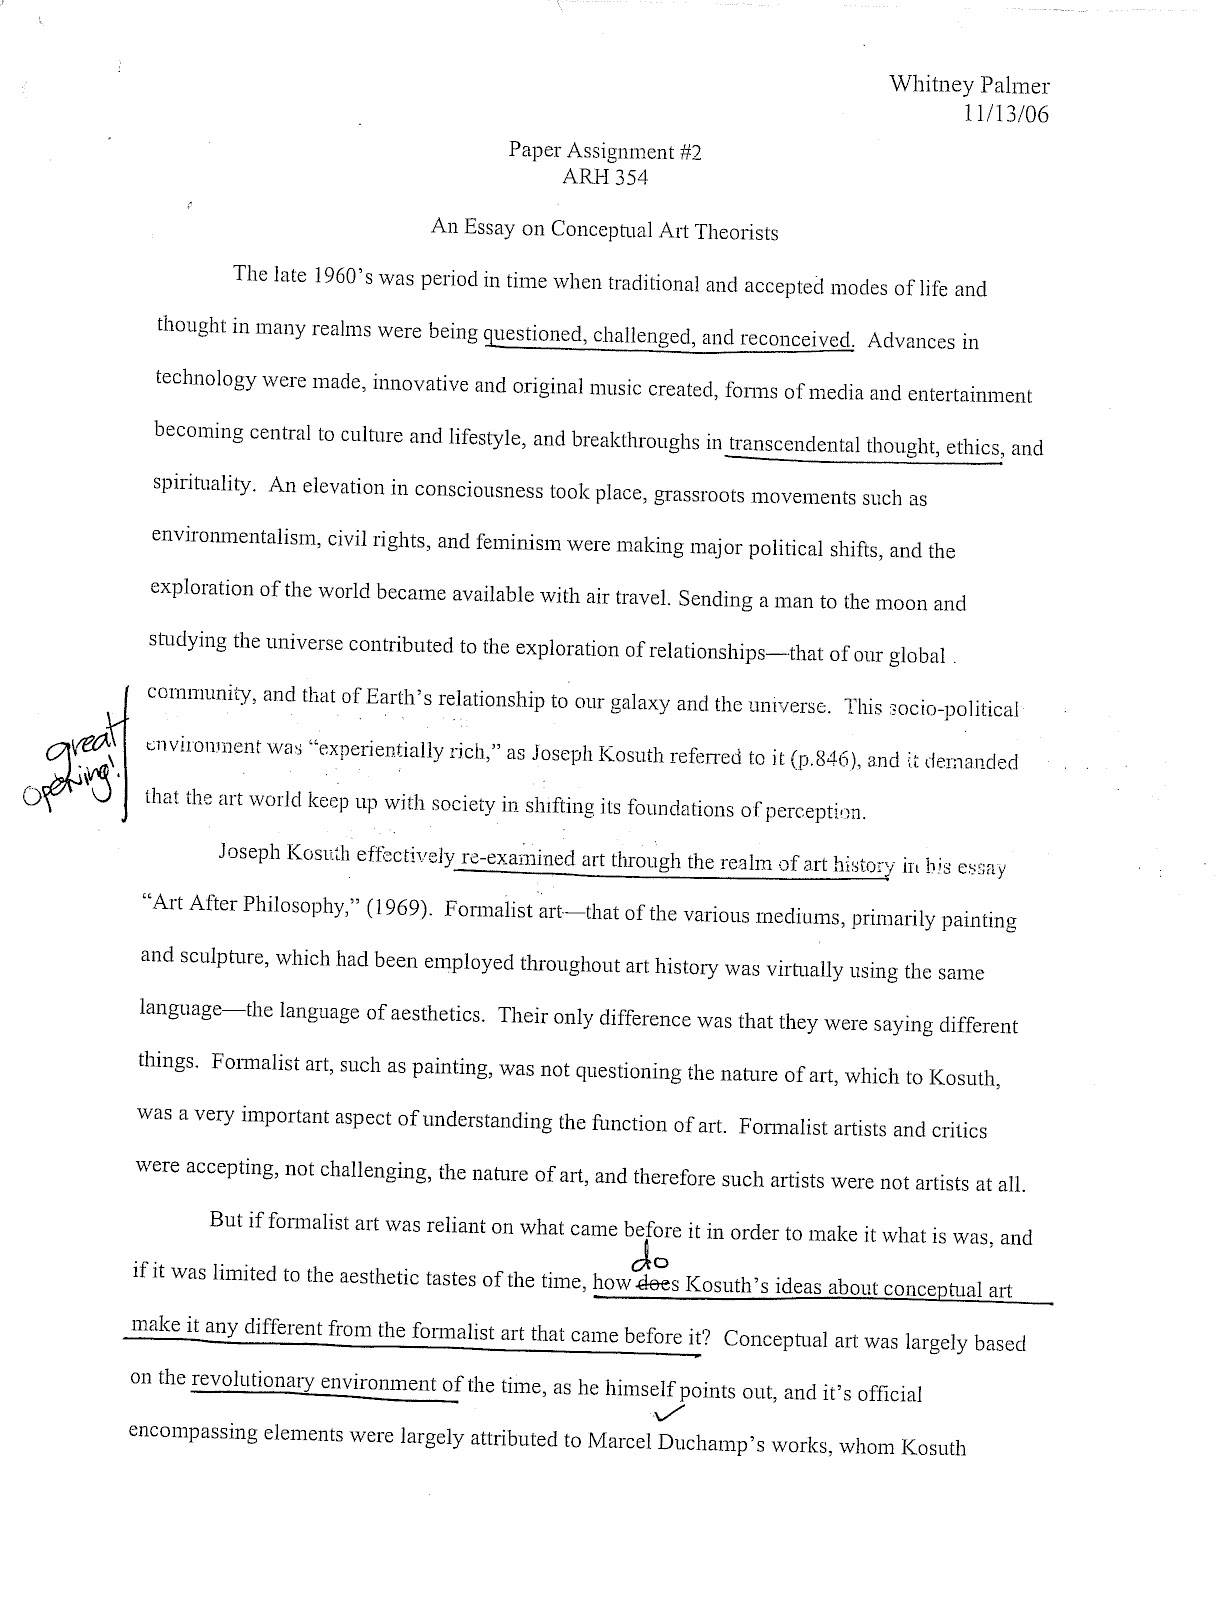 sylvia plath daddy essay essay on heroism heroism essays essays on  art history essays art history essays compucenter the aim of this essay from art history fall